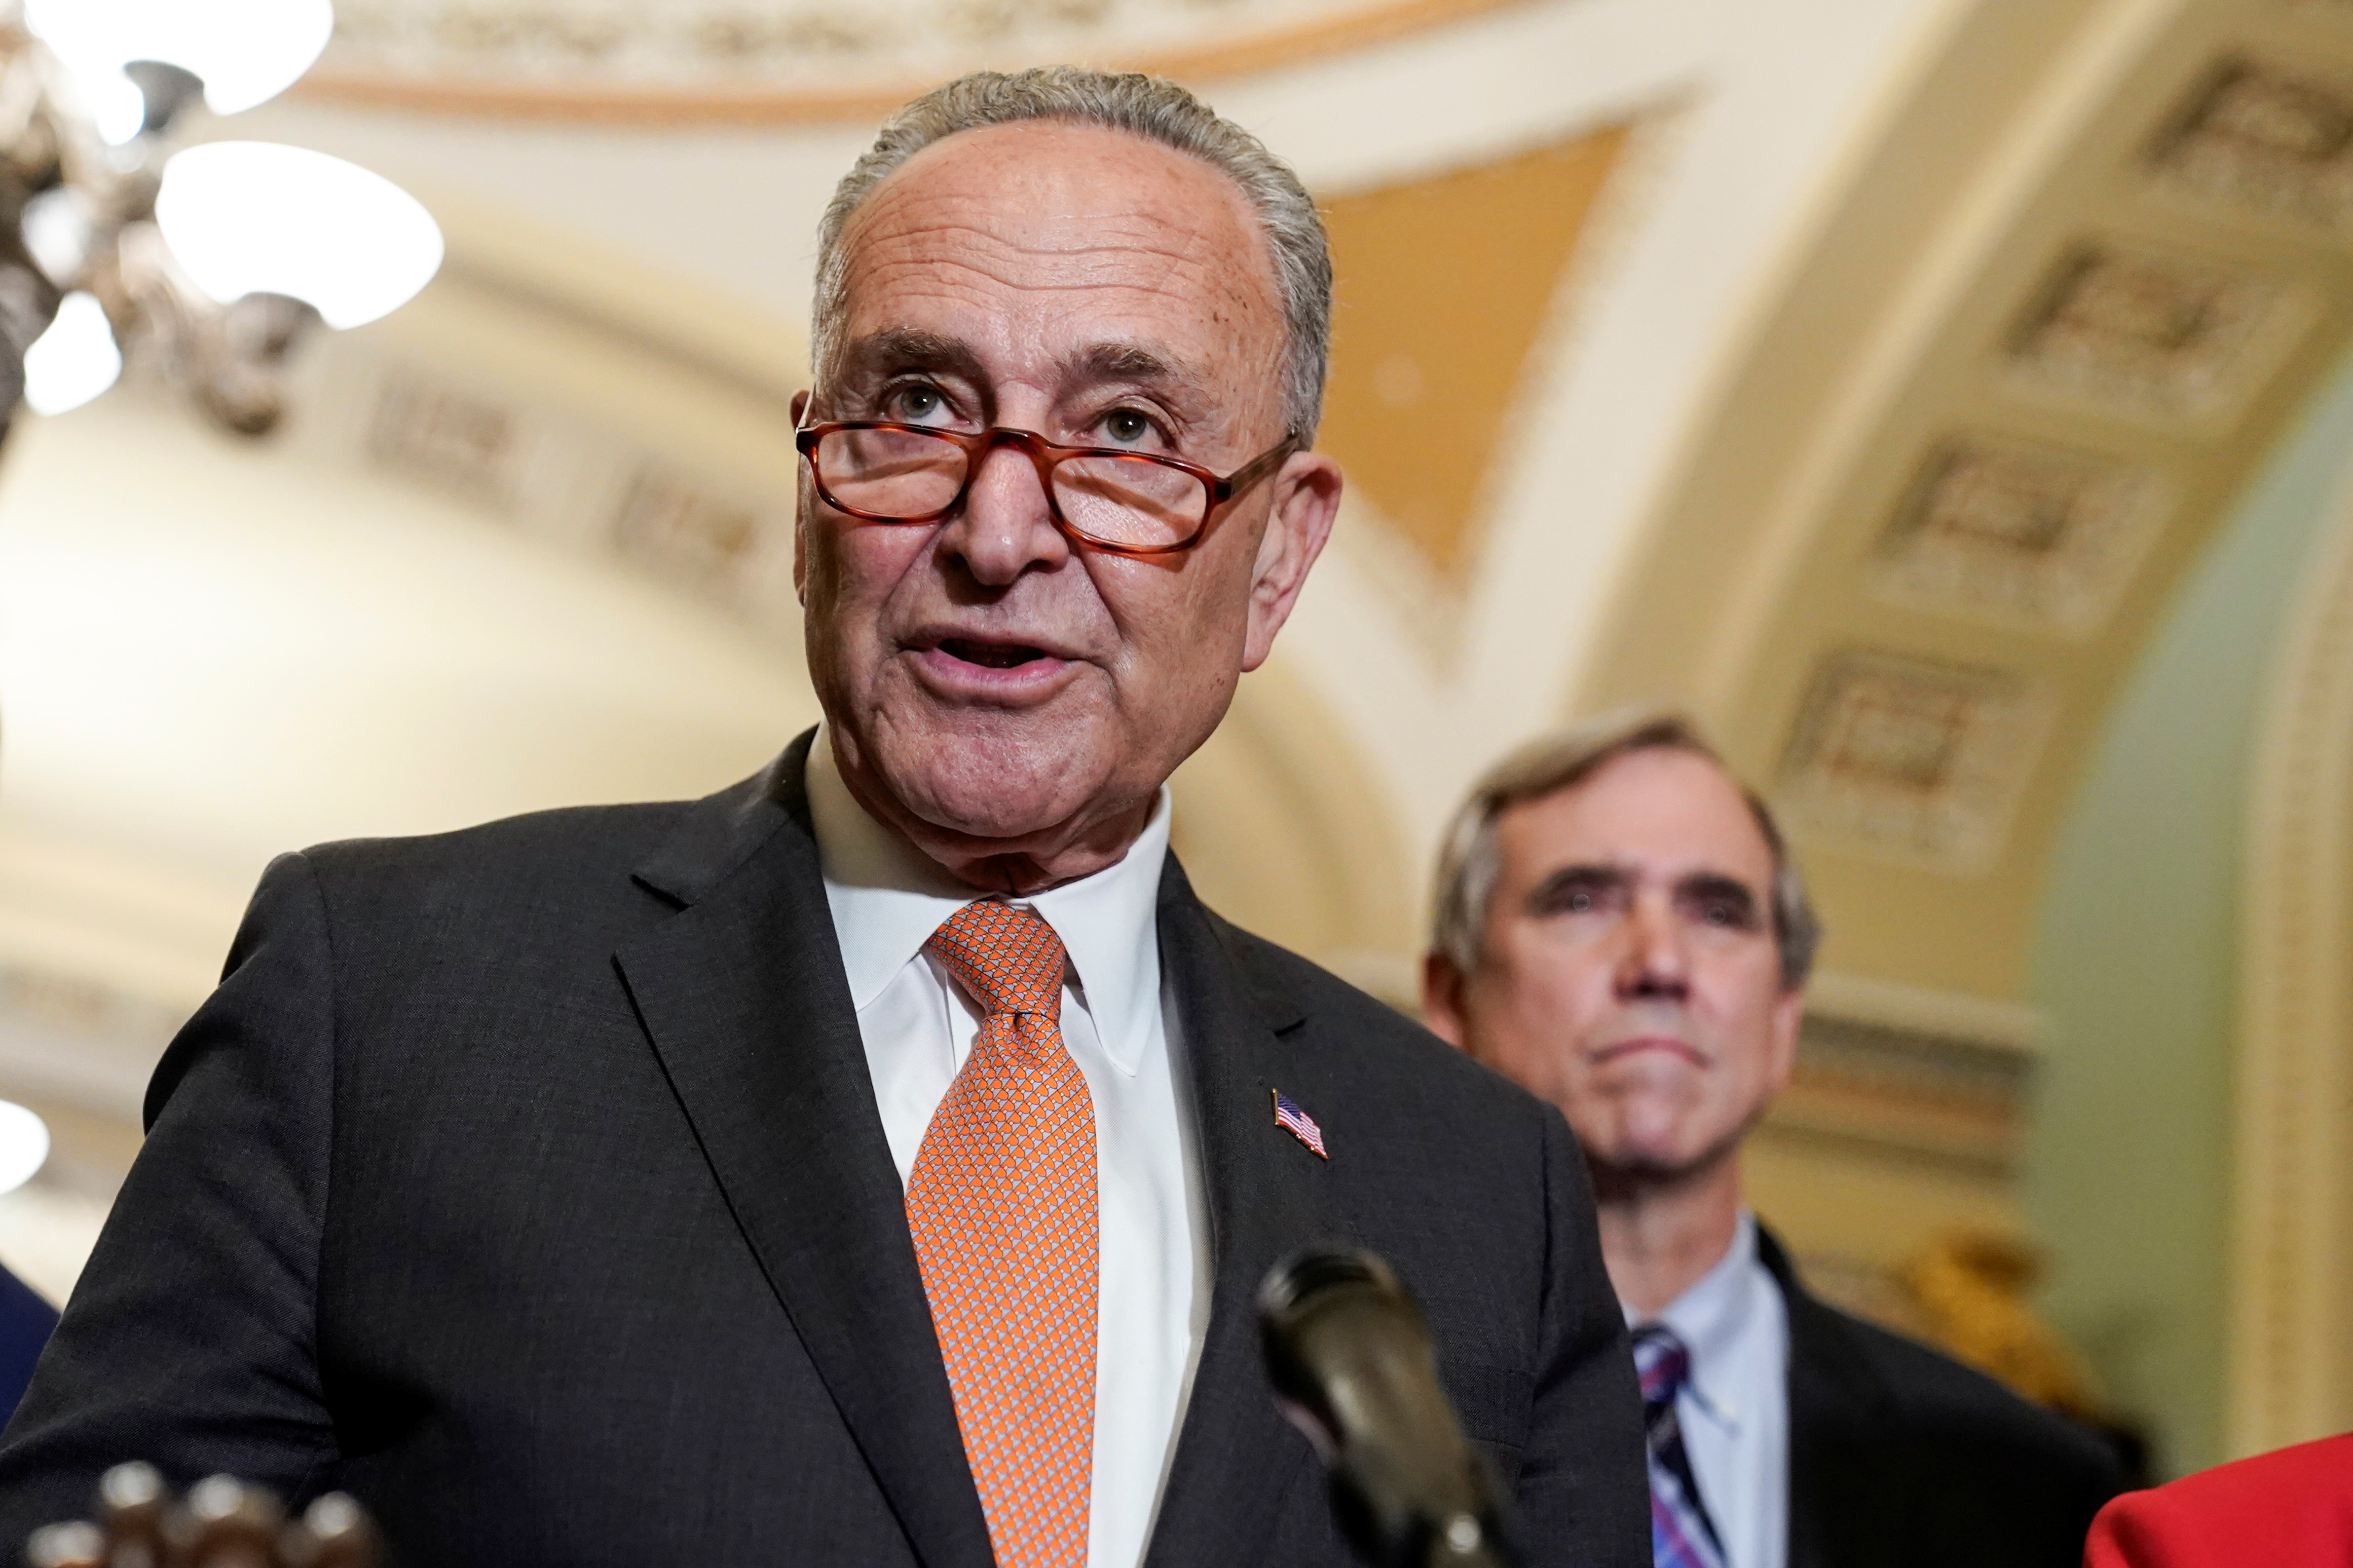 Senate Majority Leader Chuck Schumer (D-NY) speaks to the media after the Senate Democratic policy luncheon on Capitol Hill in Washington, U.S., June 22, 2021.      REUTERS/Joshua Roberts